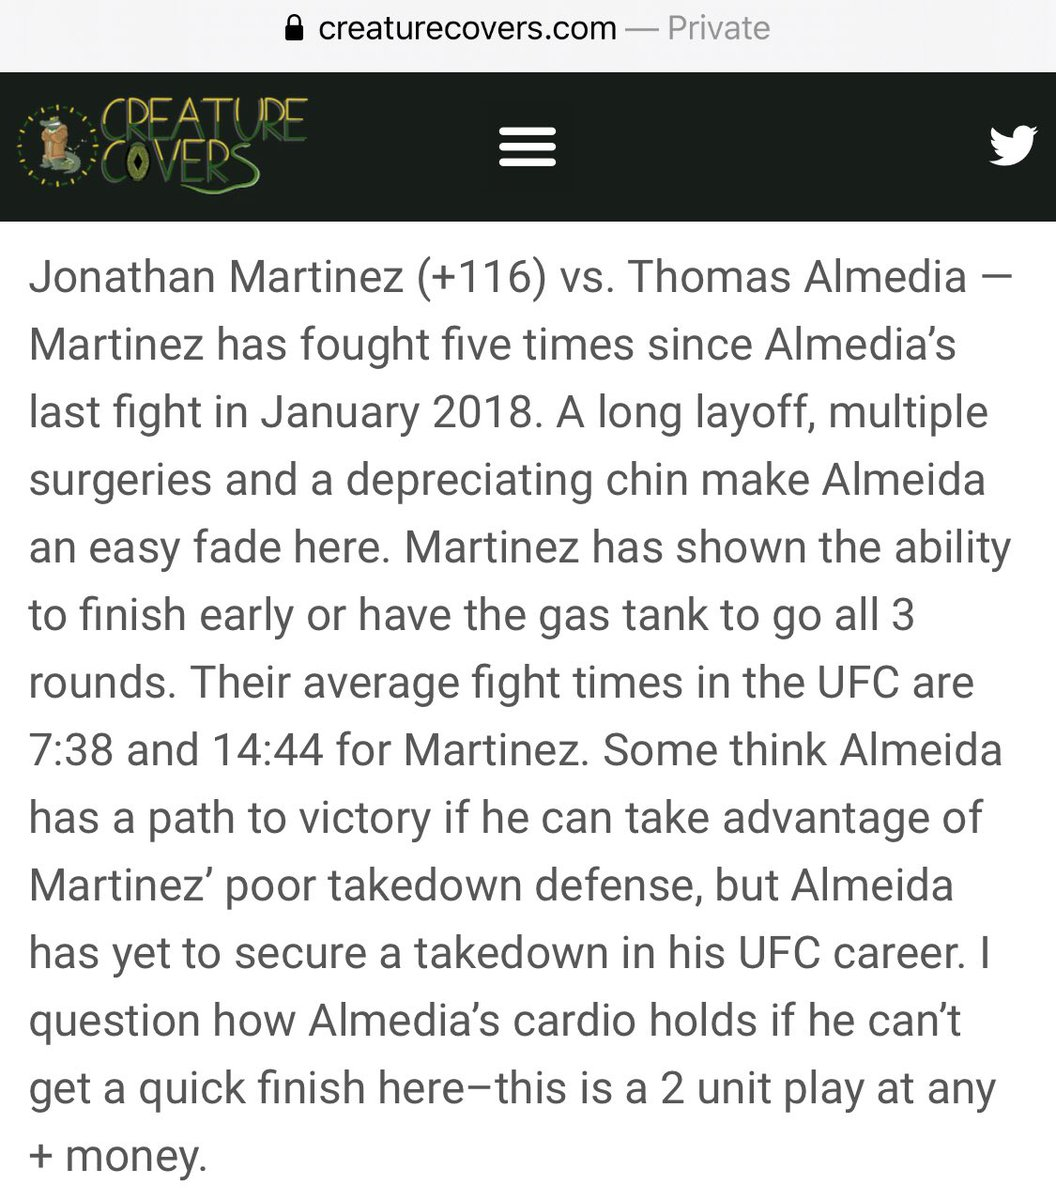 🚨 #UFCFightIsland6 BET🚨   🐕 Jonathan Martinez +110   💣 💣 2-UNIT 💣 💣  Here's what @CreatureCovers wrote about our 2U ML play  🥊 🐶 🥊 🐶 🥊  #gamblingtwitter #sportsbetting #ufcpicks #ufcbets #mmapicks #mmabets #mmabetting #UFCFightIsland6 https://t.co/0SmzhSs4W6